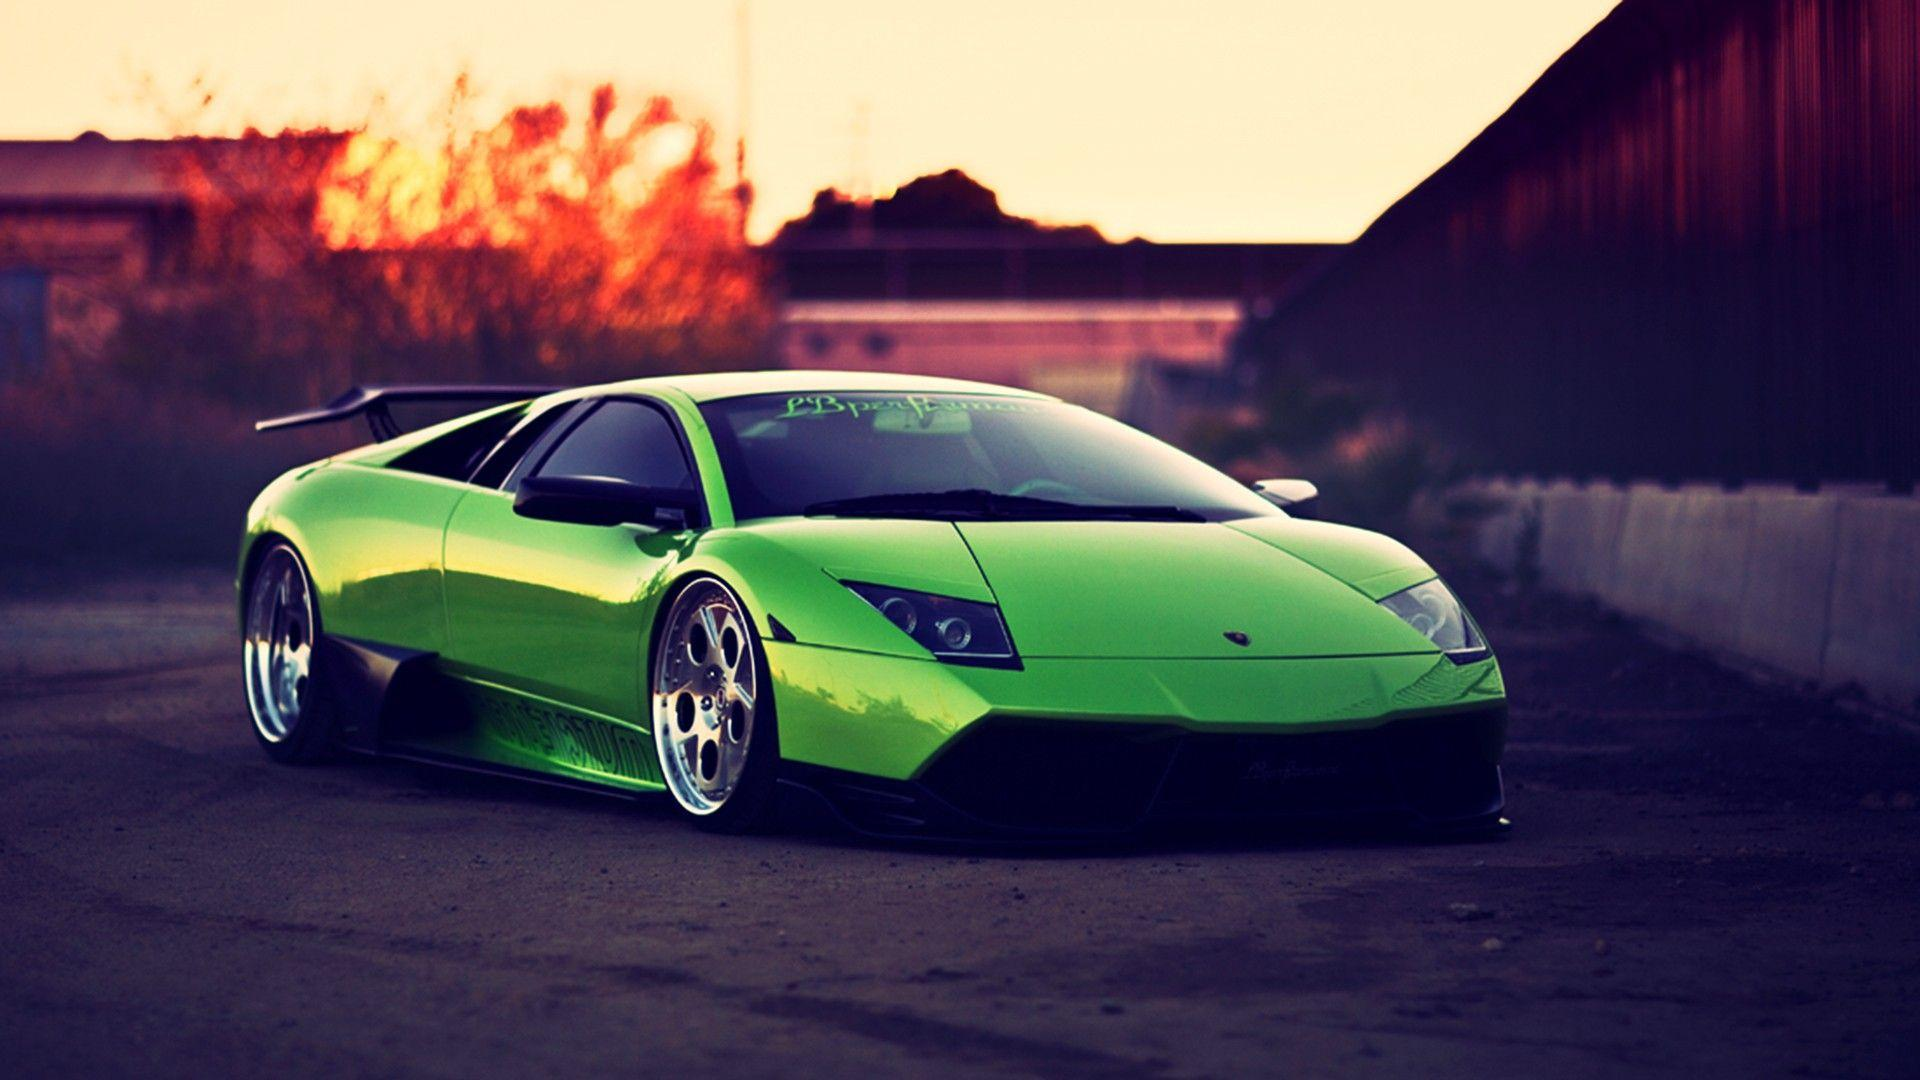 Colorful Lamborghini Wallpapers Wallpaper Cave